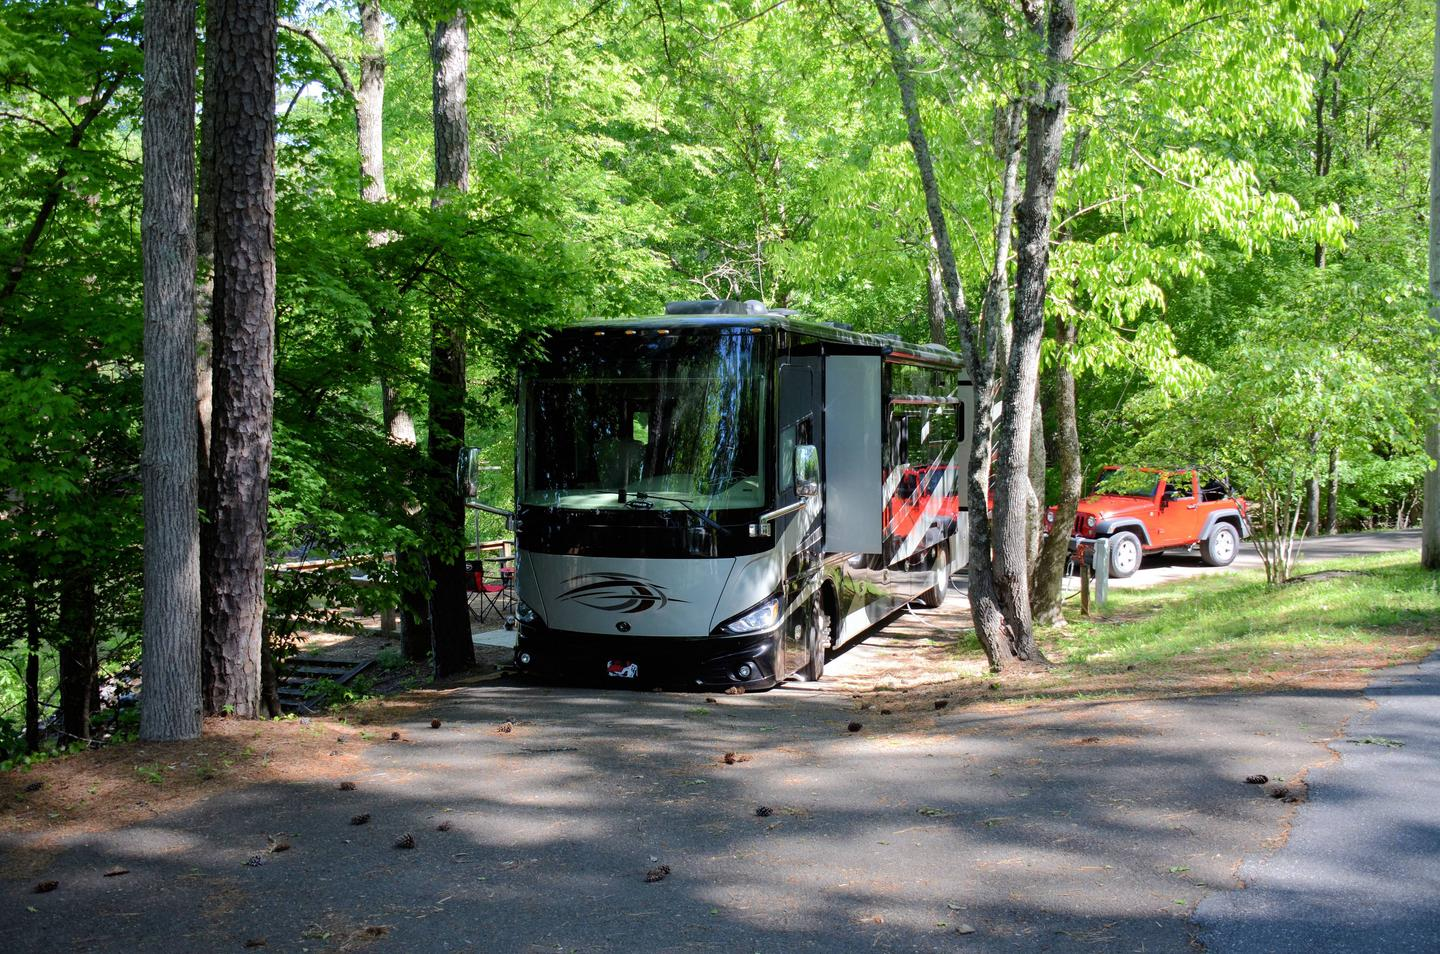 Pull-thru exit, driveway slope, awning clearance.McKinney Campground, campsite 43.